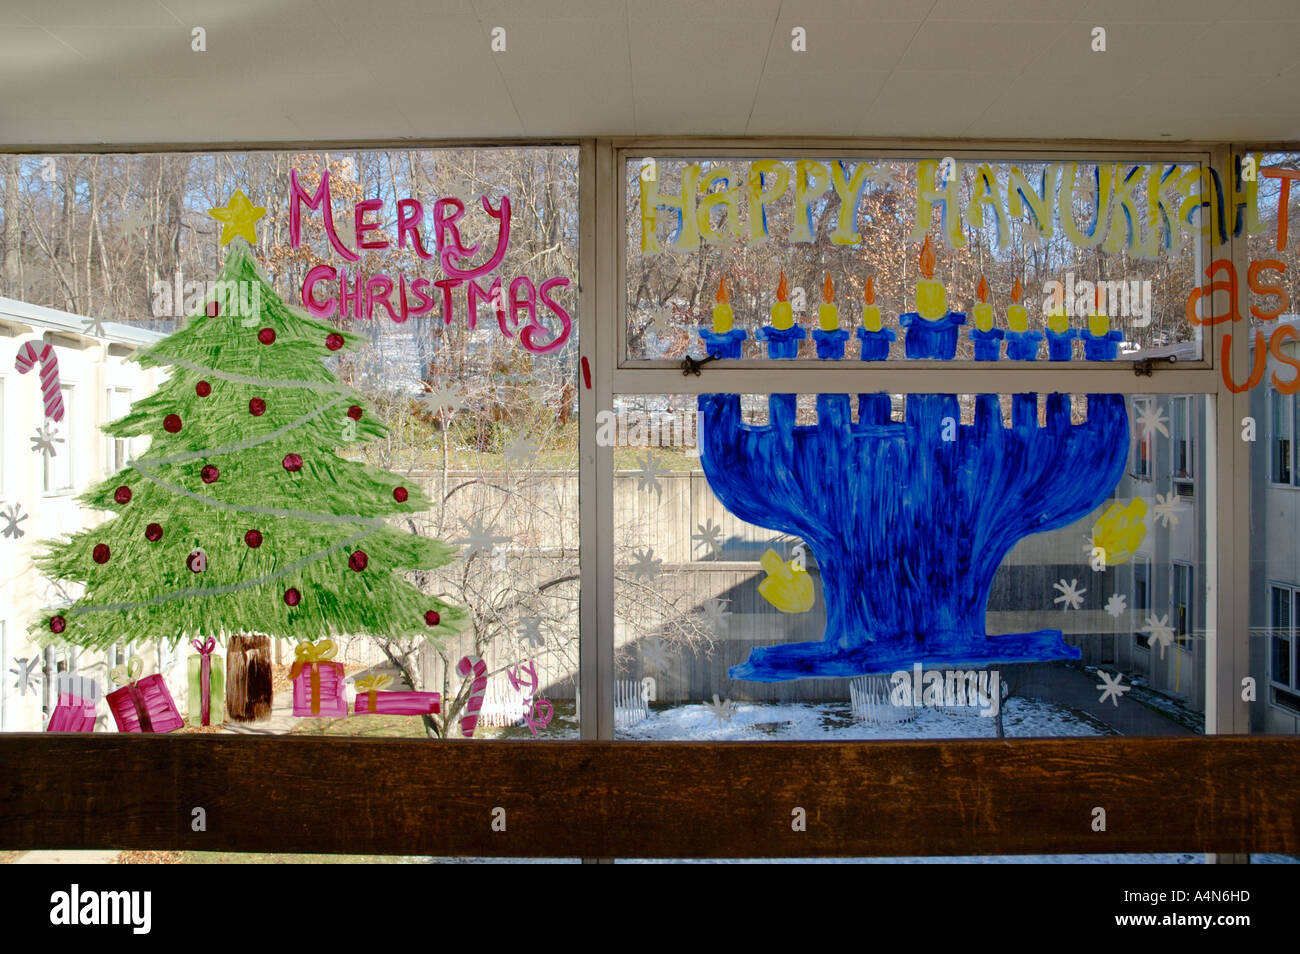 Holiday Greetings Paintings For Christmas And Hanukkah On Public